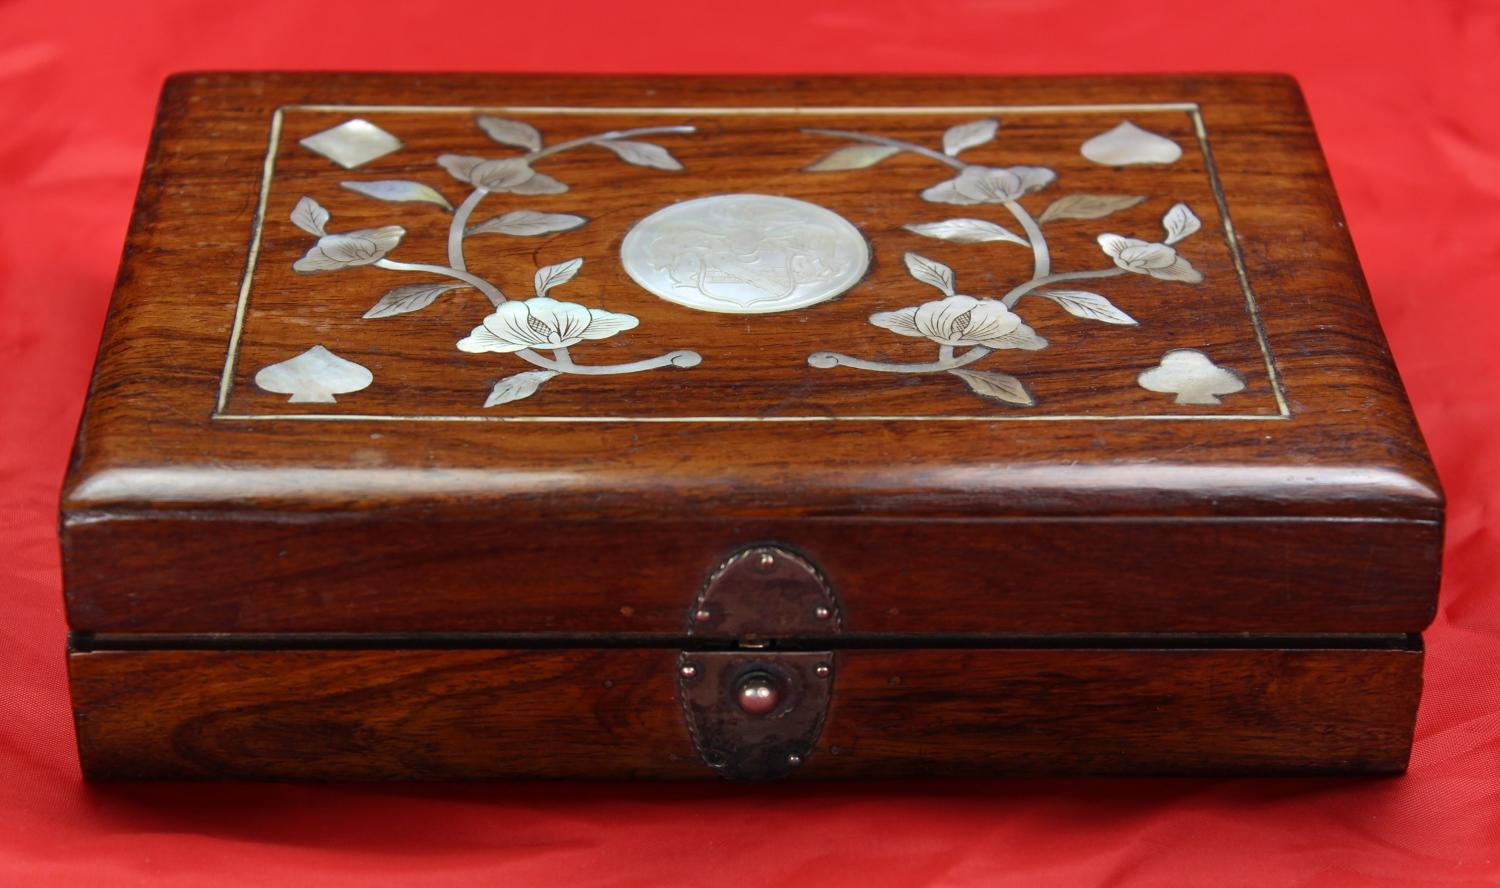 Wood and m-o-p armorial box and counters for STEWART